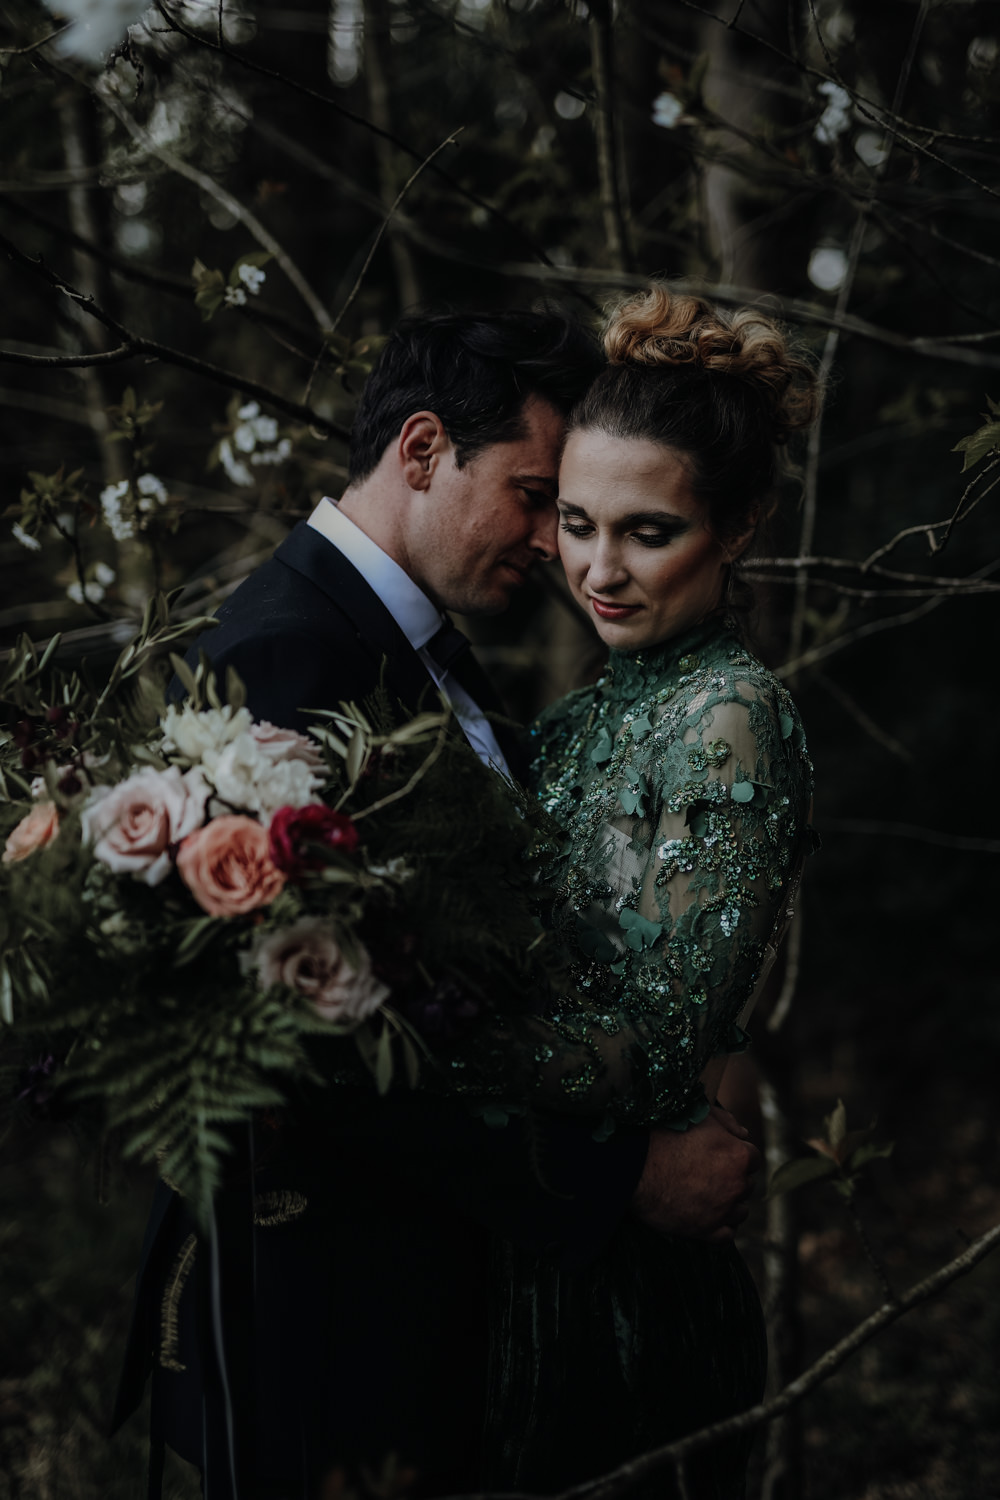 Bride Bridal Dress Gown Emerald Green Leather Jacket Modern Gothic Woods Wedding Ideas Ayelle Photography